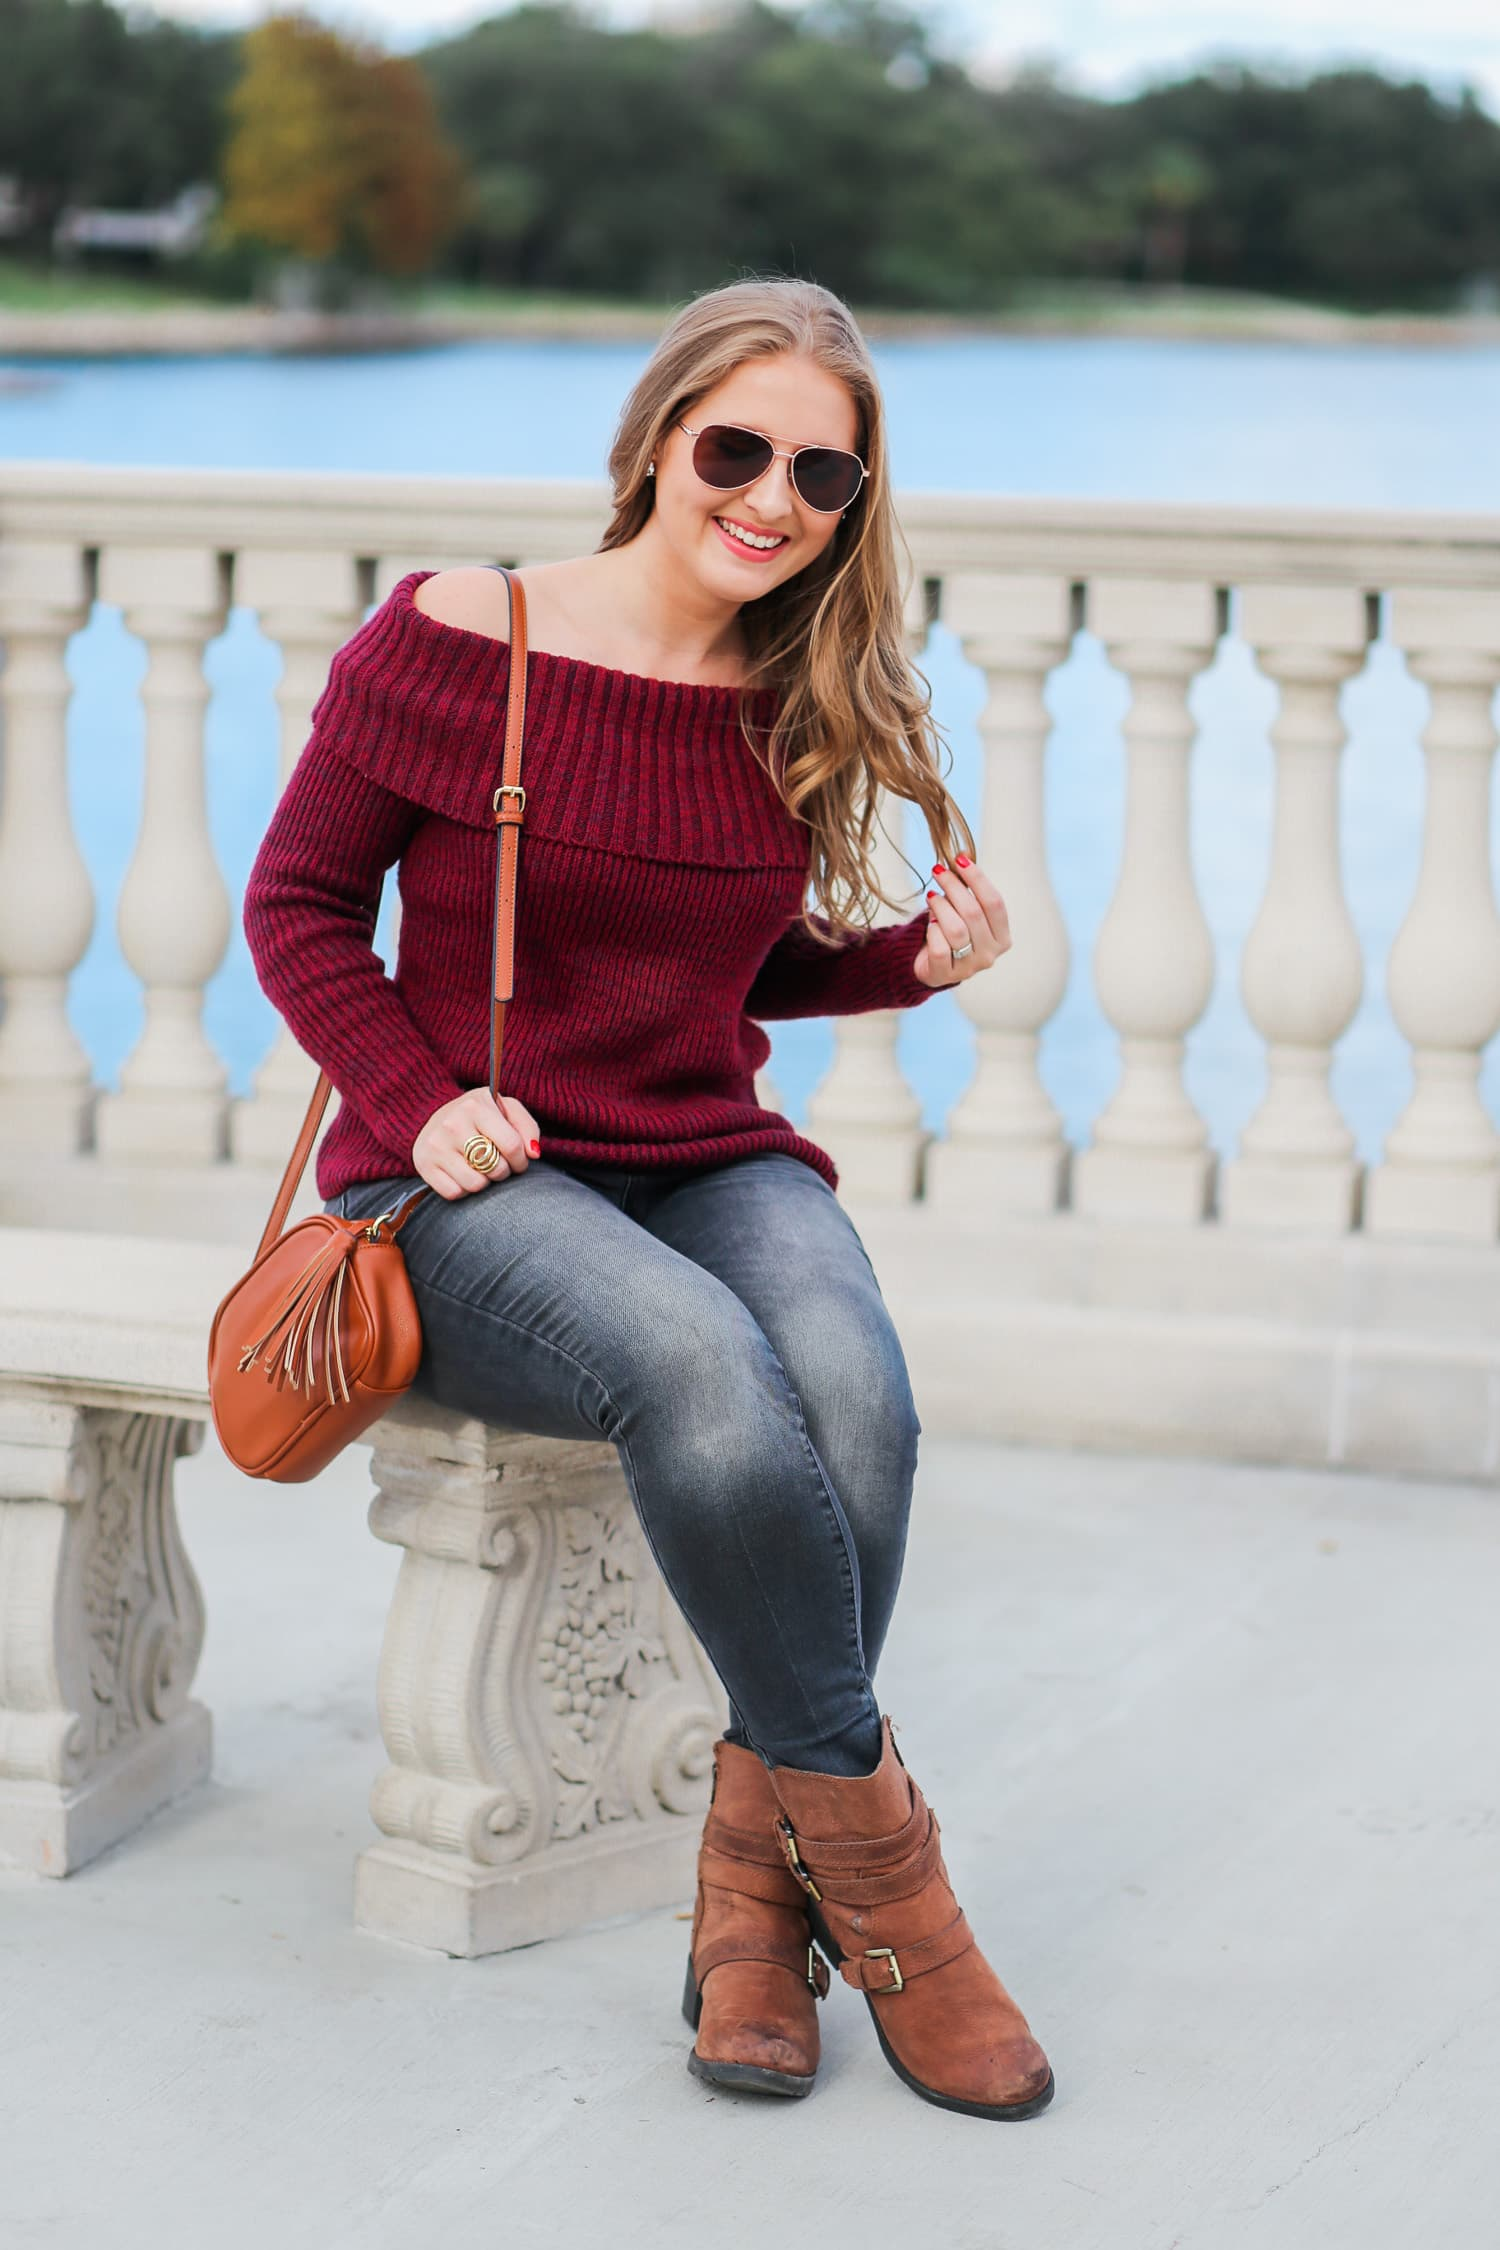 casual-winter-outfit-off-the-shoulder-sweater-gray-jeggins-moto-boots-foster-grant-rose-gold-aviator-sunglasses-7753-3